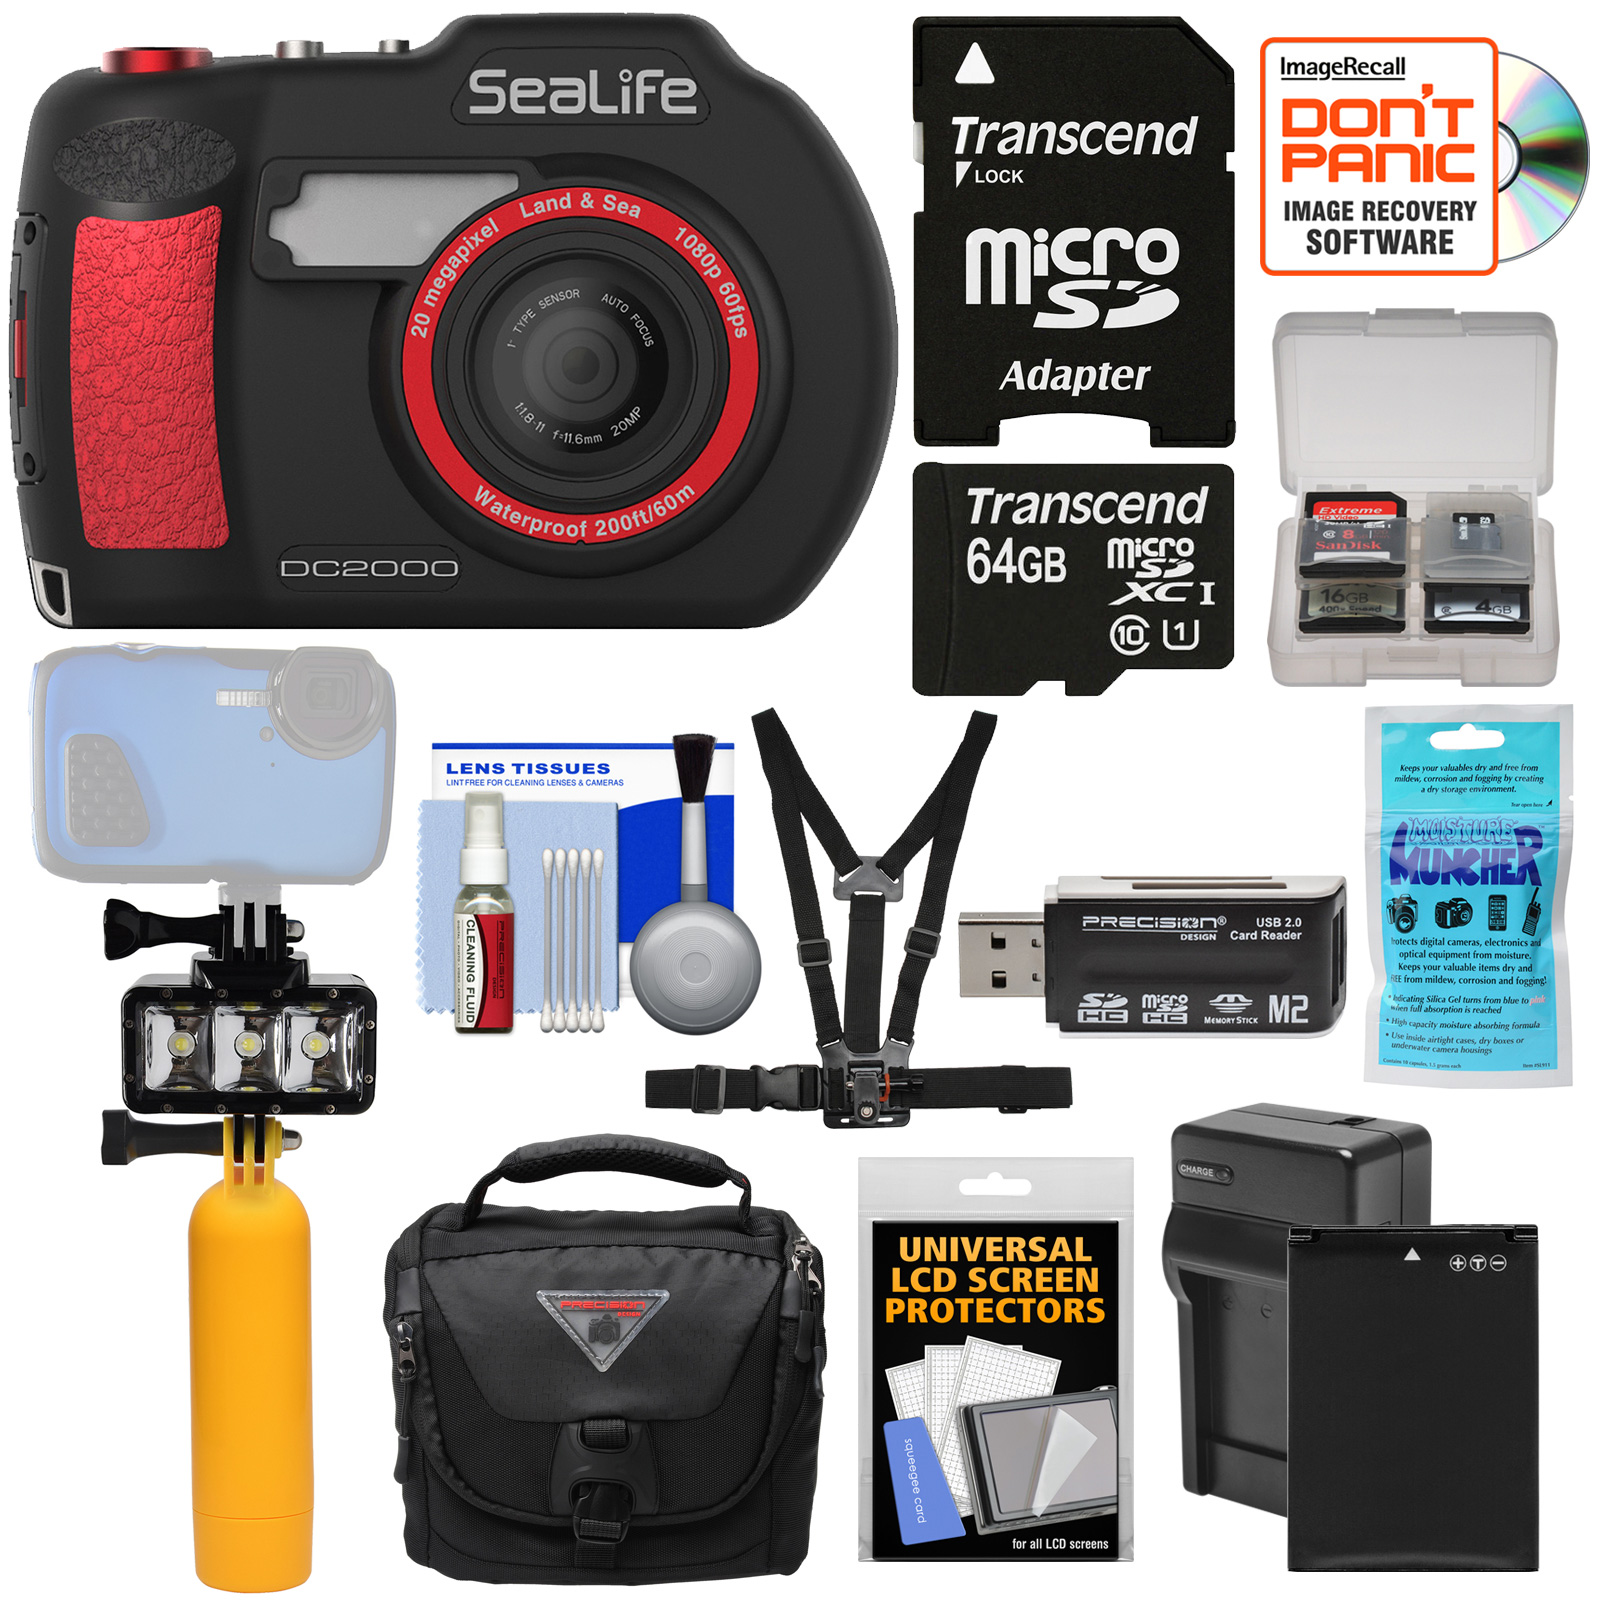 SeaLife DC2000 HD Underwater Digital Camera with 64GB Card + Battery & Charger + Diving LED Light + Buoy +... by SeaLife